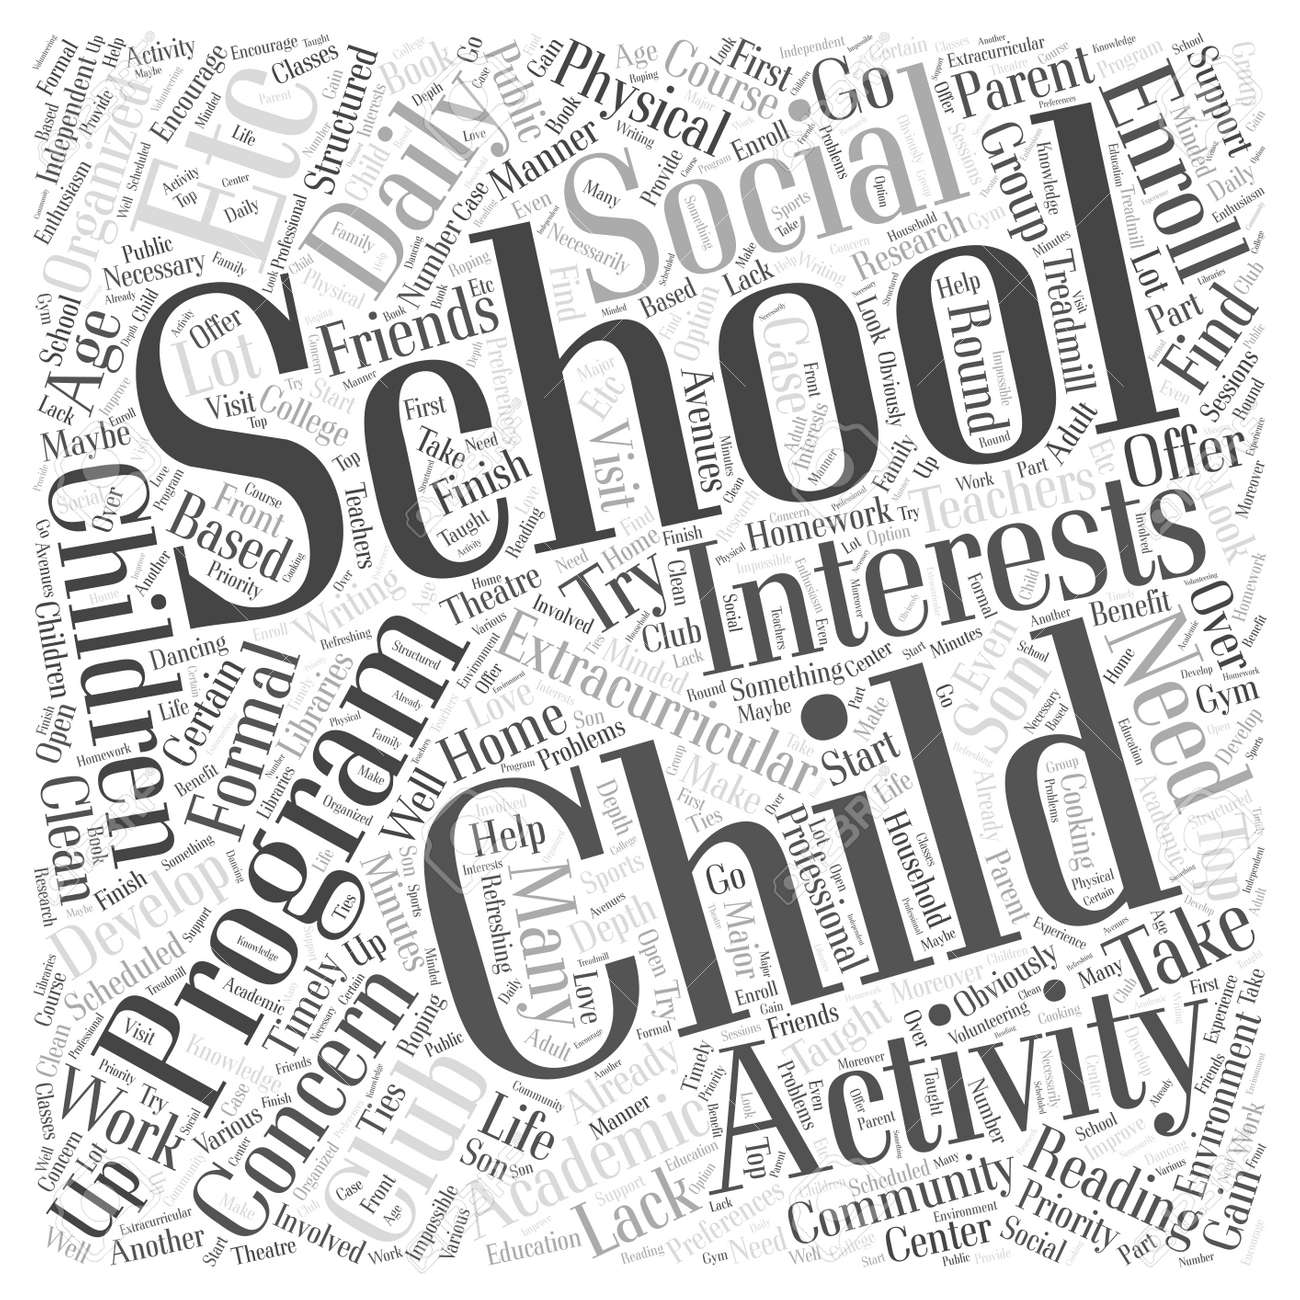 A Home Based After School Program Word Cloud Concept Royalty Free ...